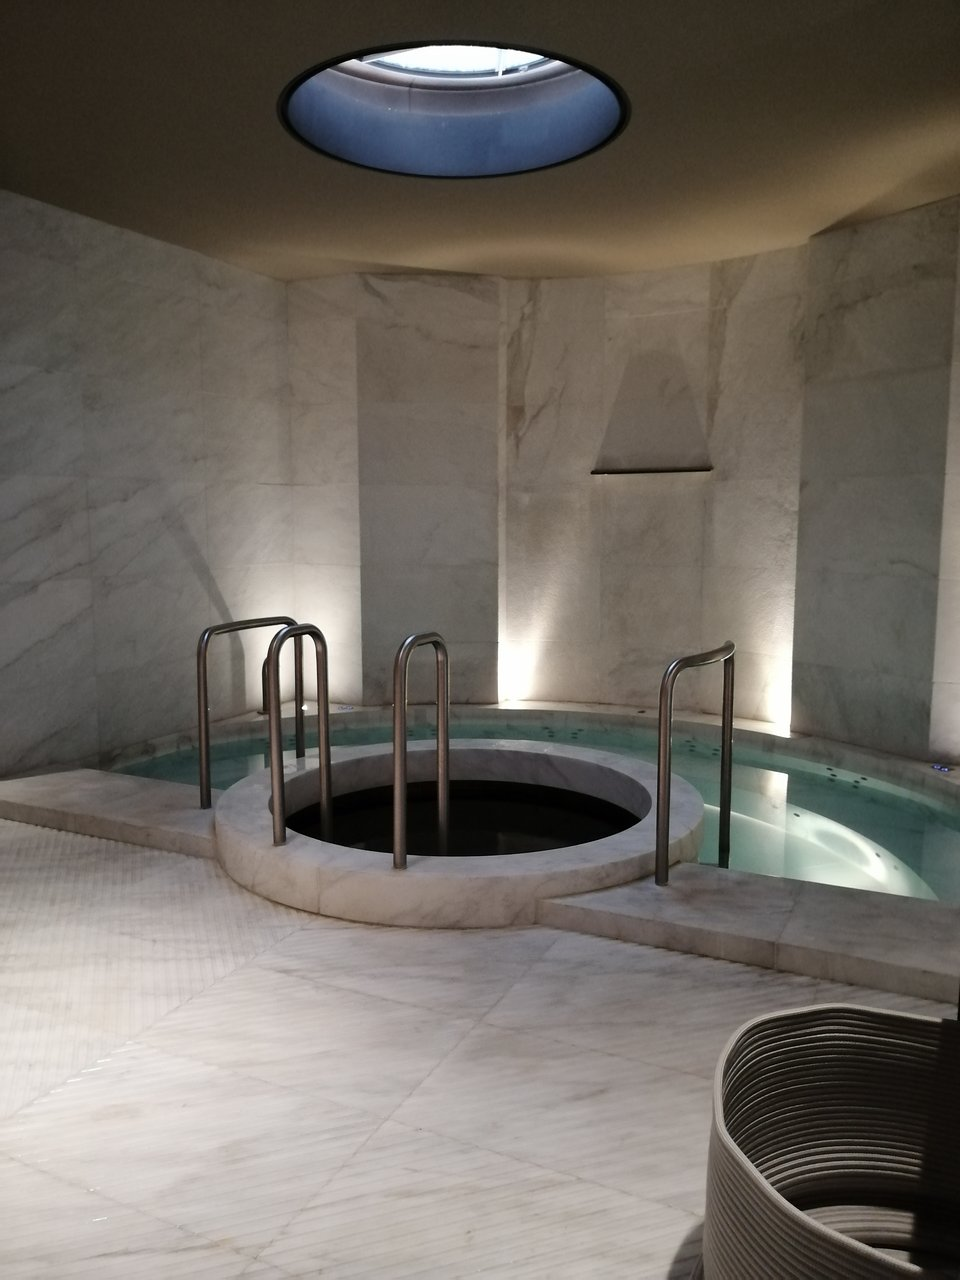 Spa Akasha Paris 2020 All You Need To Know Before You Go With